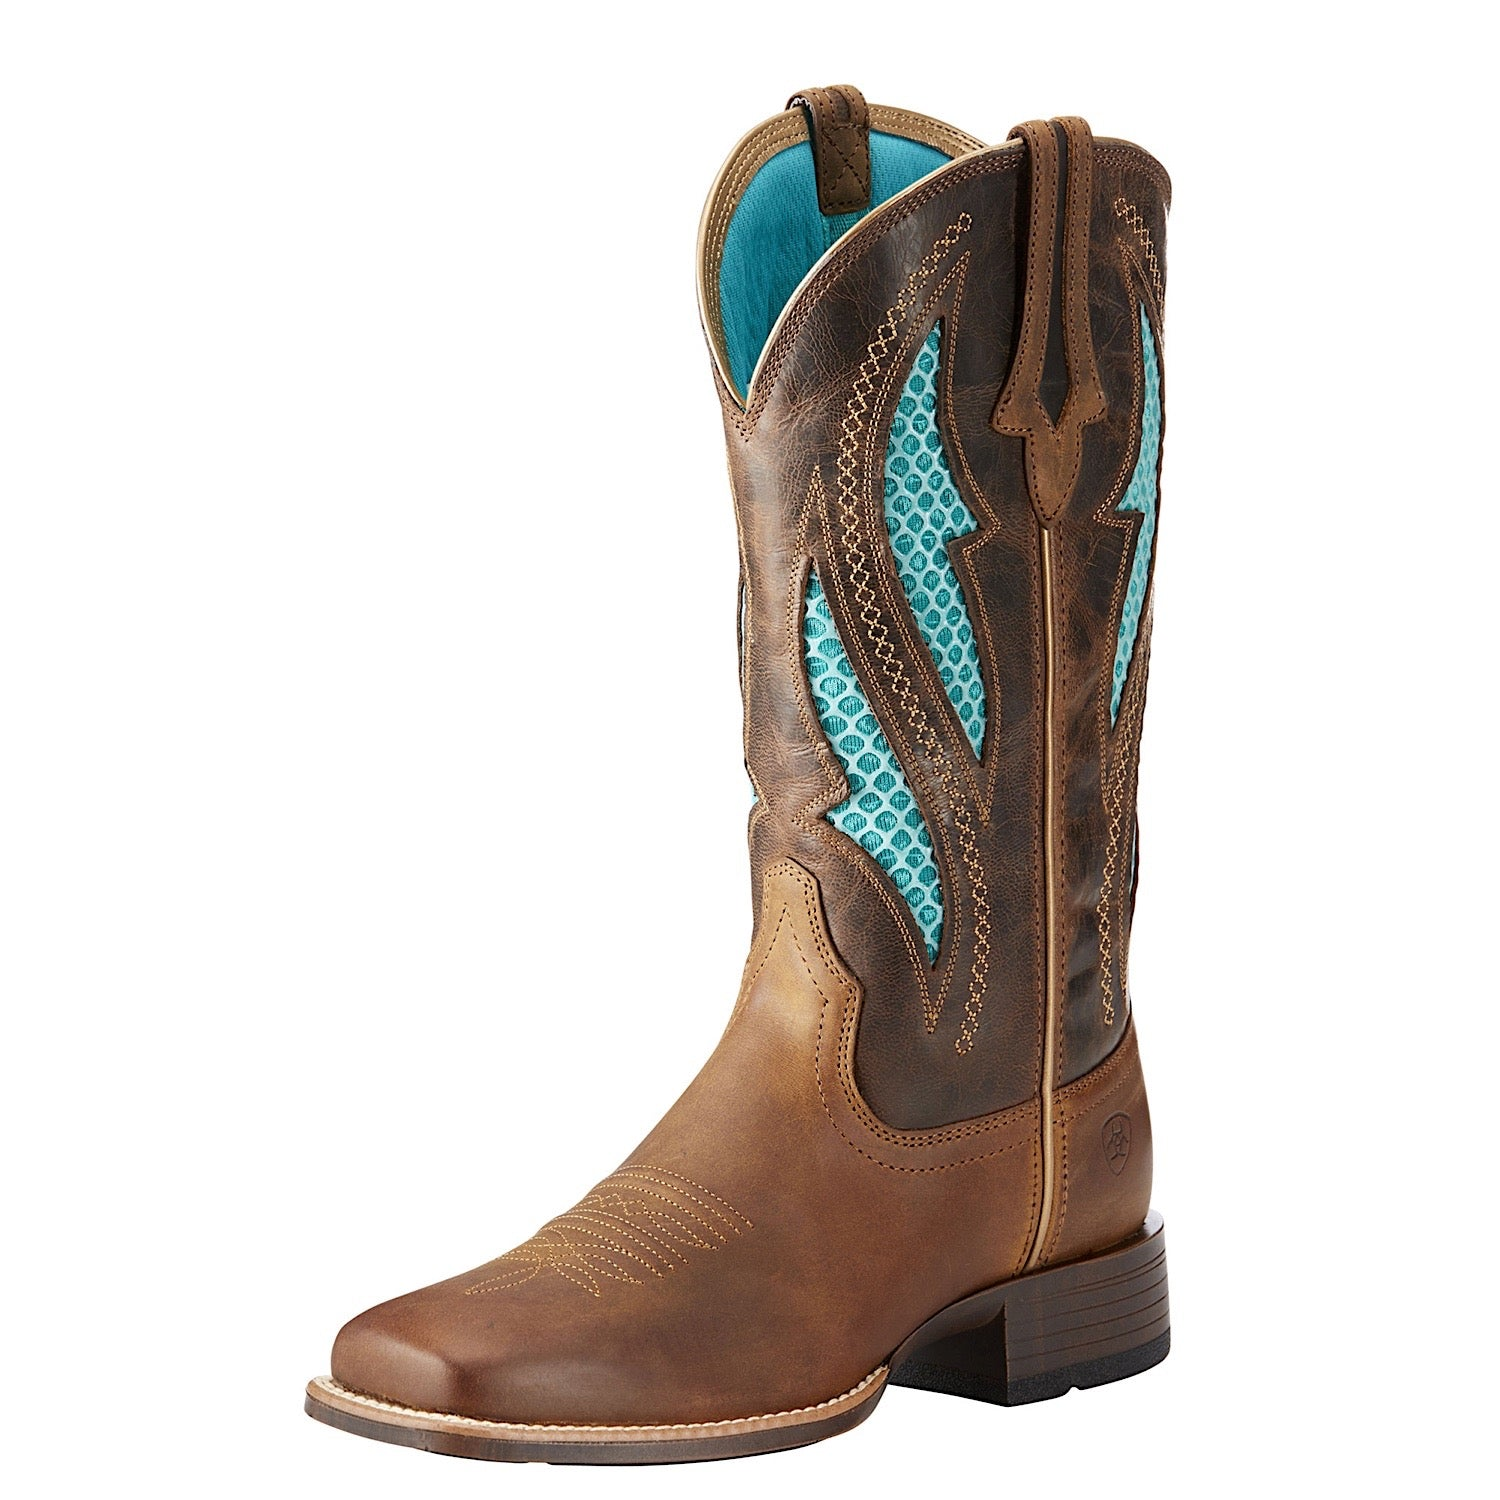 Ariat Women's Tailgate Distressed Gold Western Boots